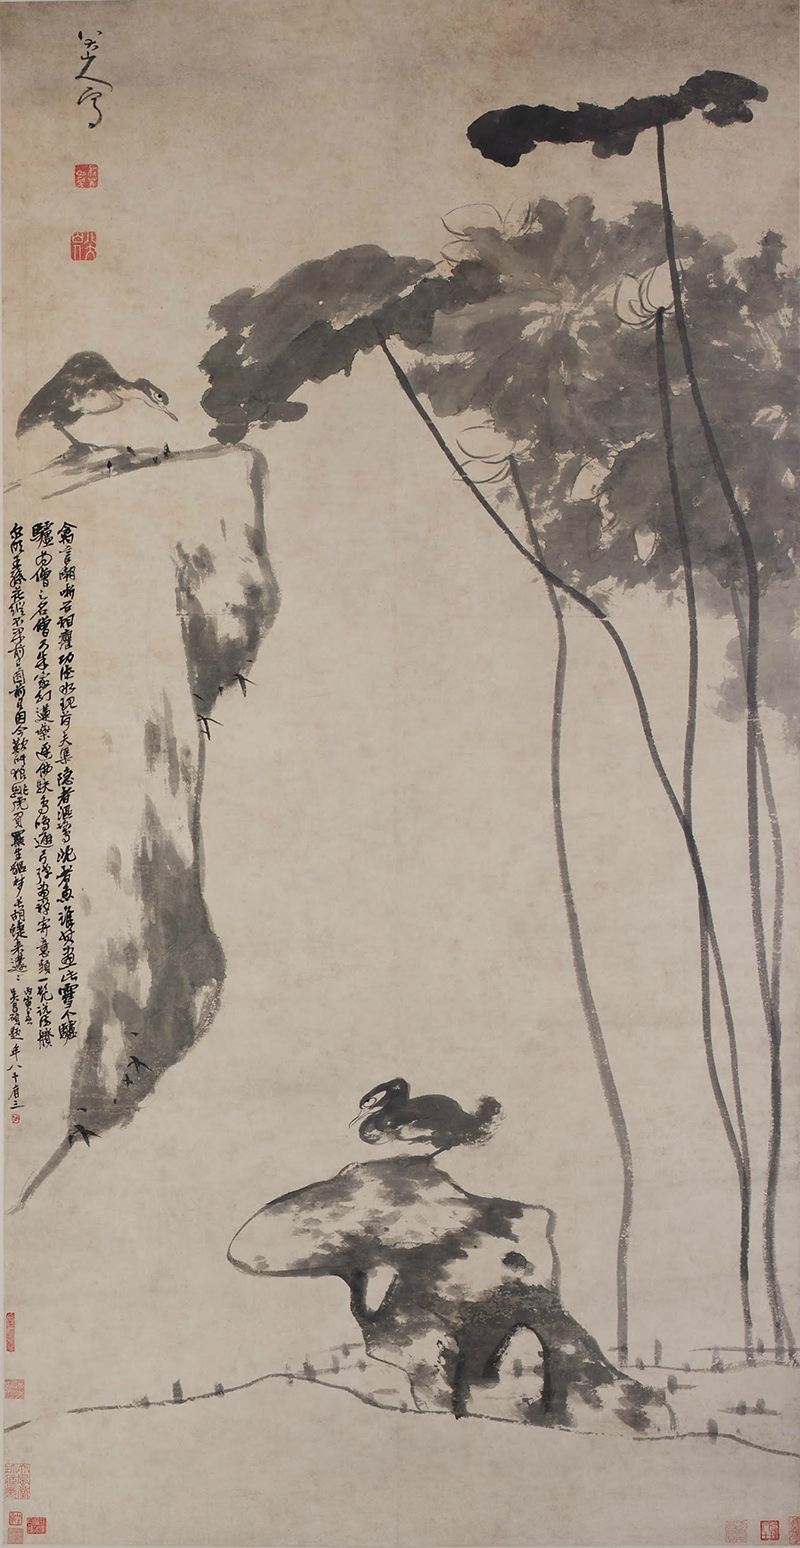 Tableau Peinture Paysage Moderne Zhu Da | Chinese Painting | China Online Museum